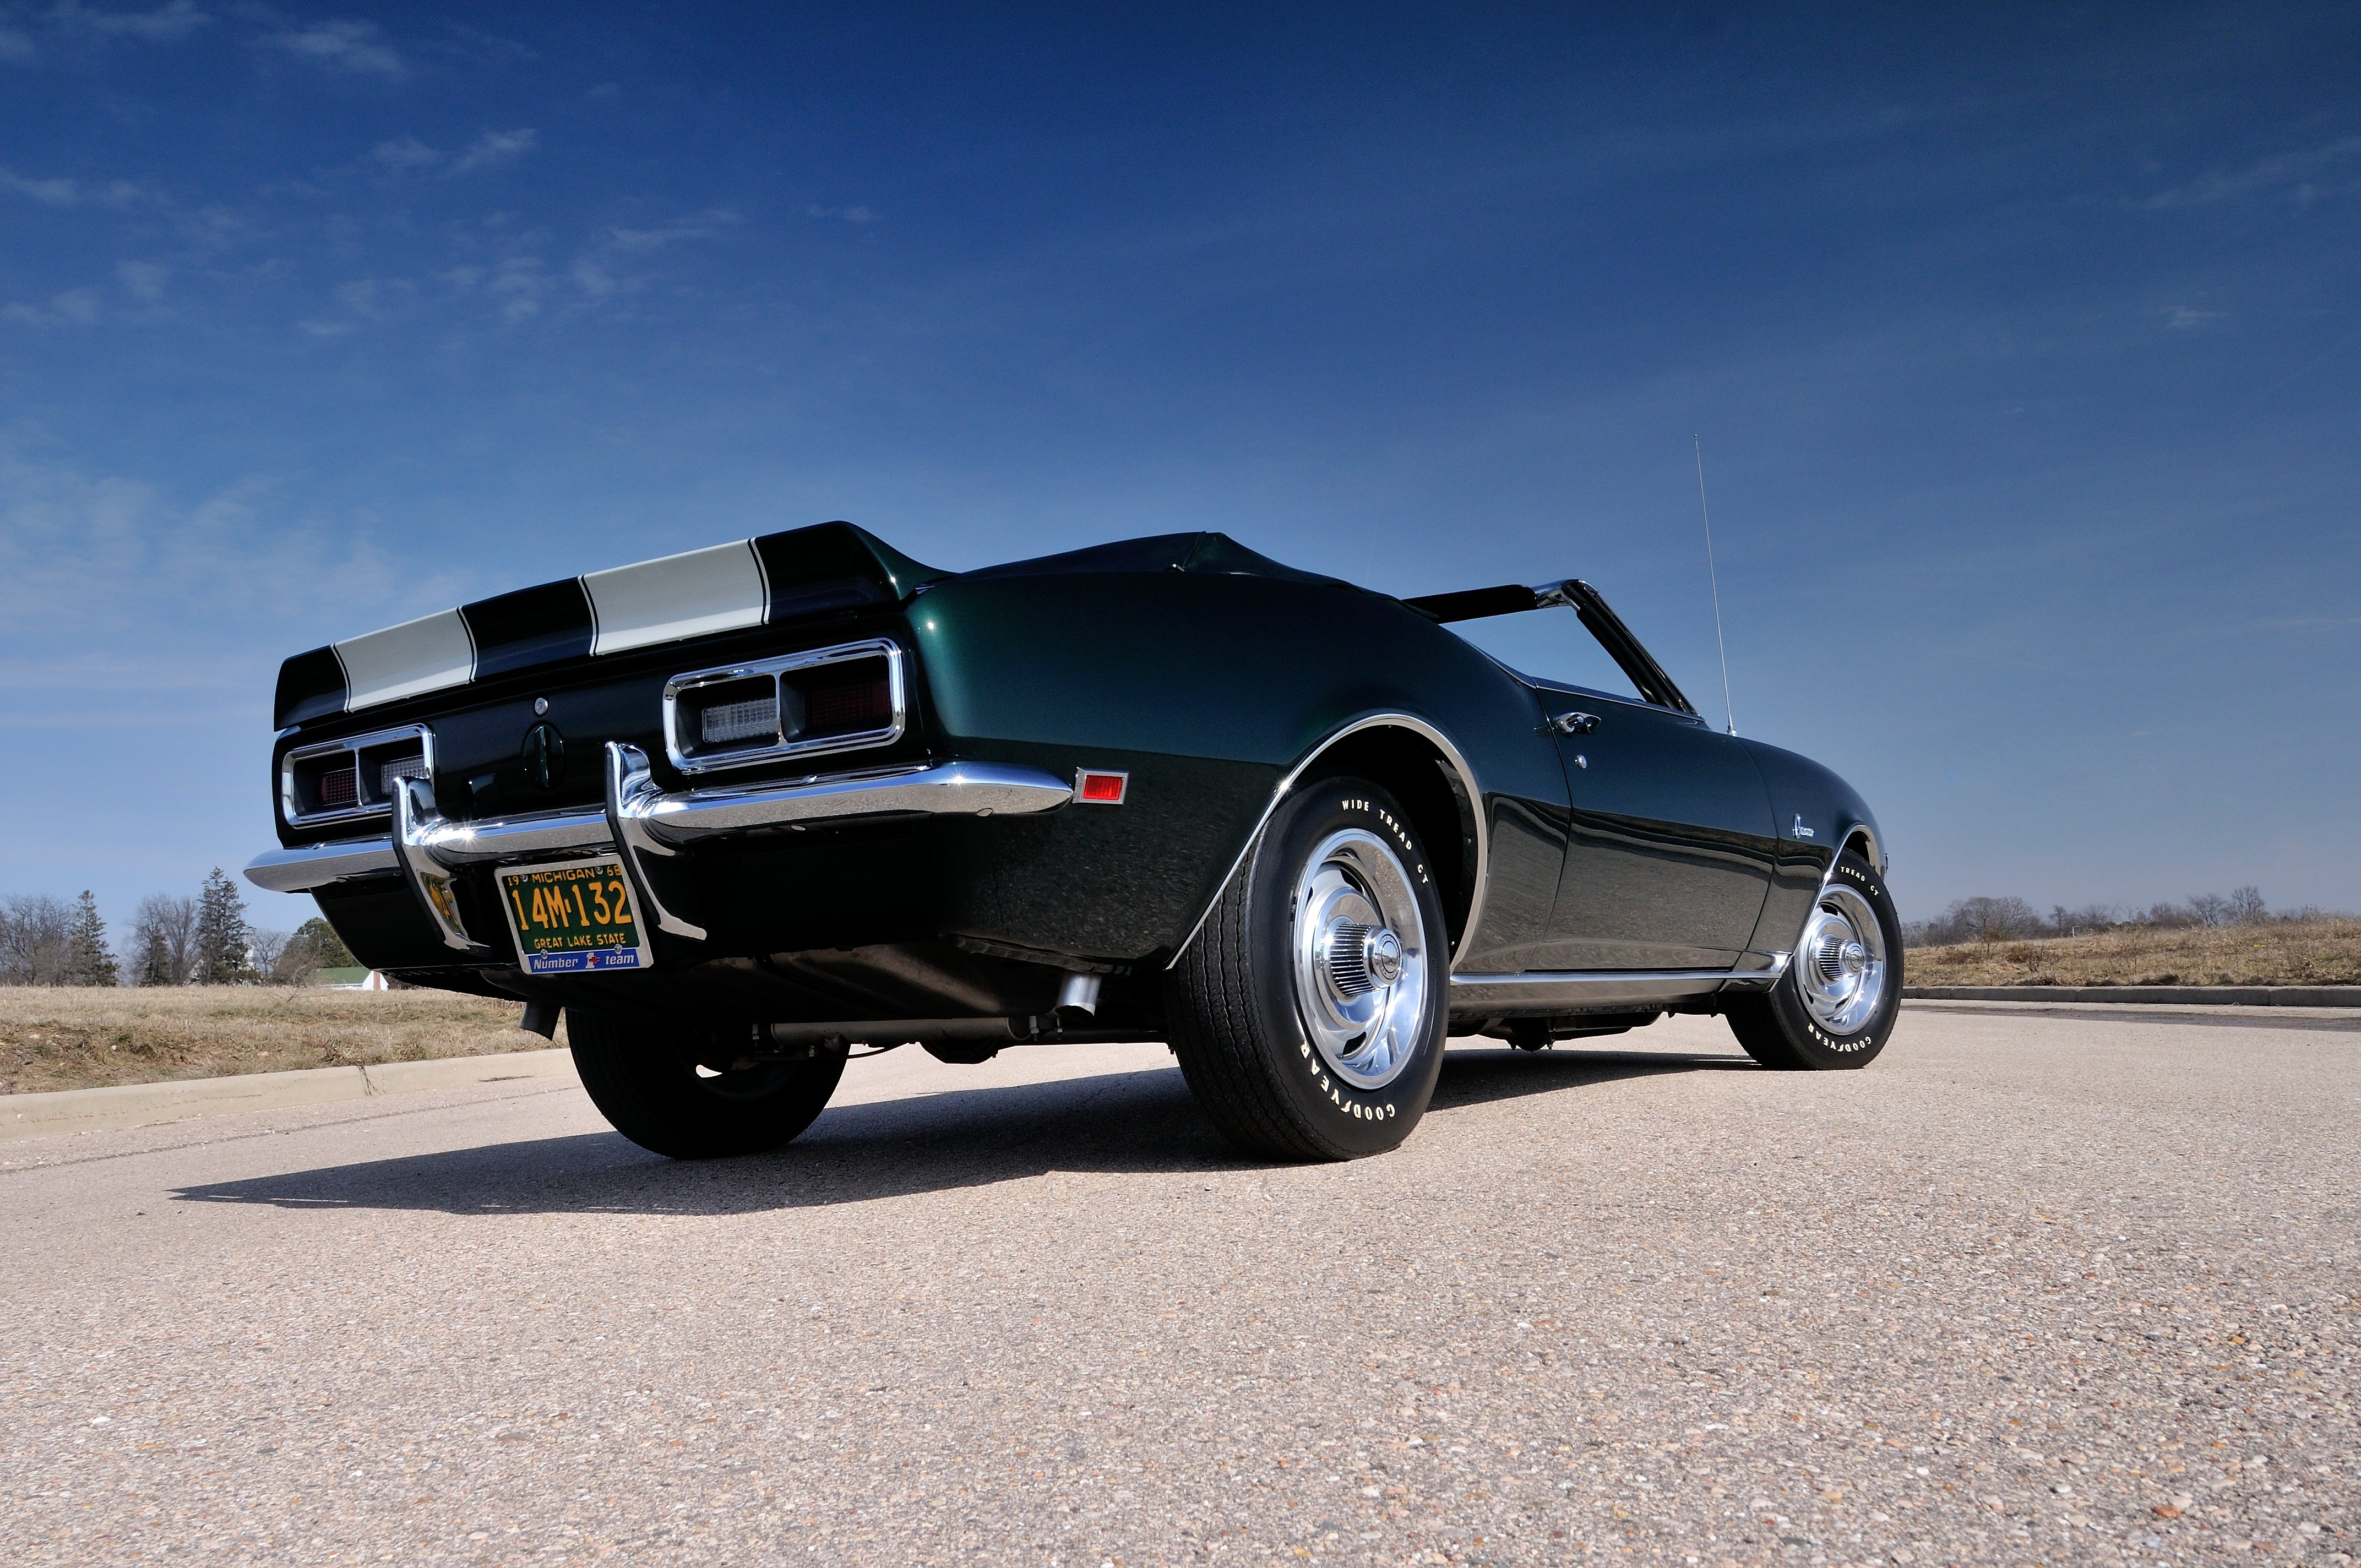 1968 Chevrolet Camaro Z28 Convertible Muscle Classic Vintage Z 28 Original Usa 4288x2848 08 Wallpaper 686378 Wallpaperup